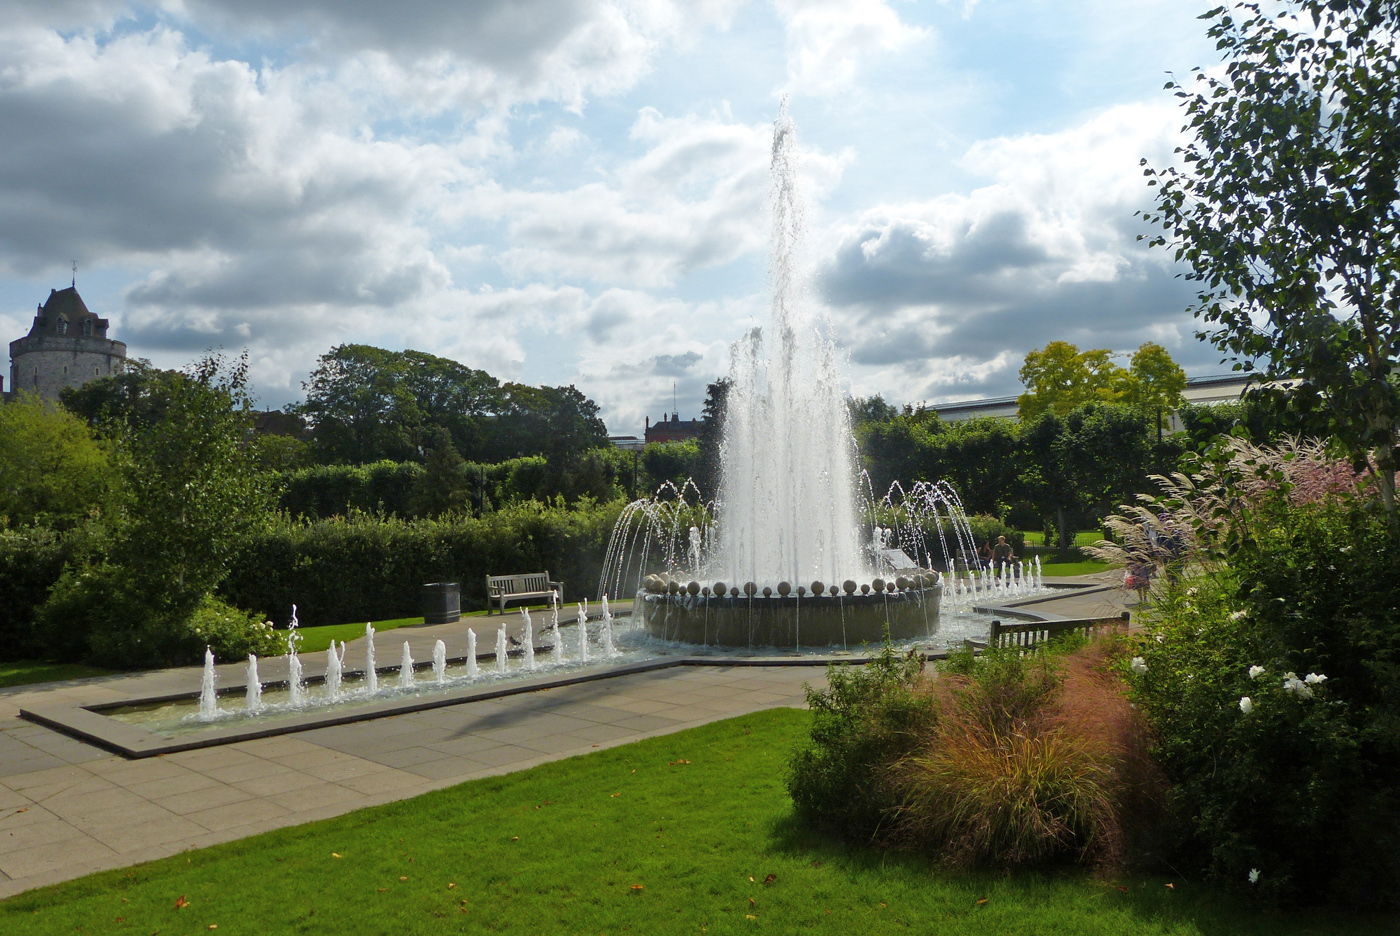 DIAMOND JUBILEE FOUNTAIN by John Cano-Lopez